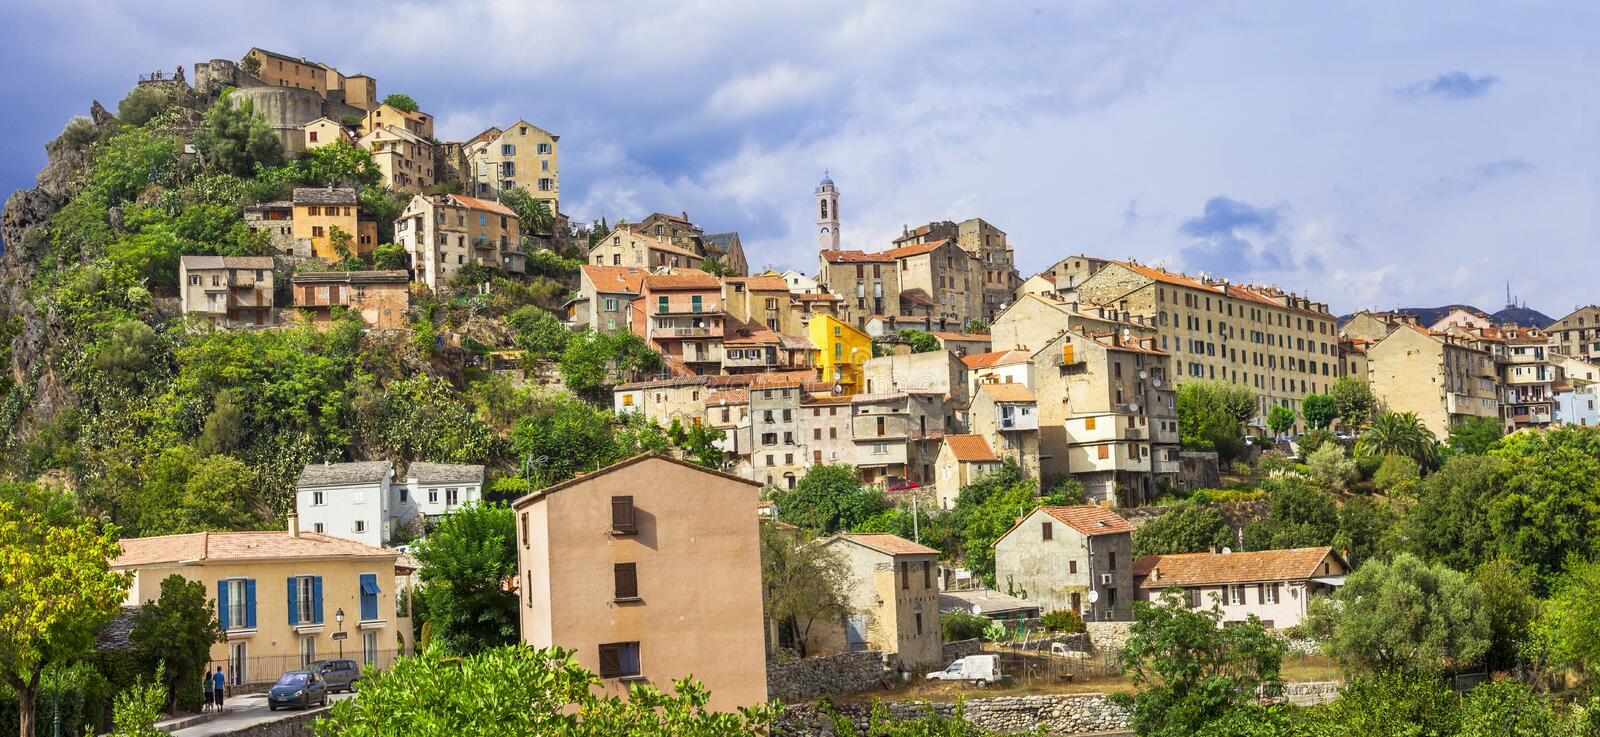 Corte - panoramic view.Corsica. Corte - impressive medieval town in Corsica, view with citadel stock images